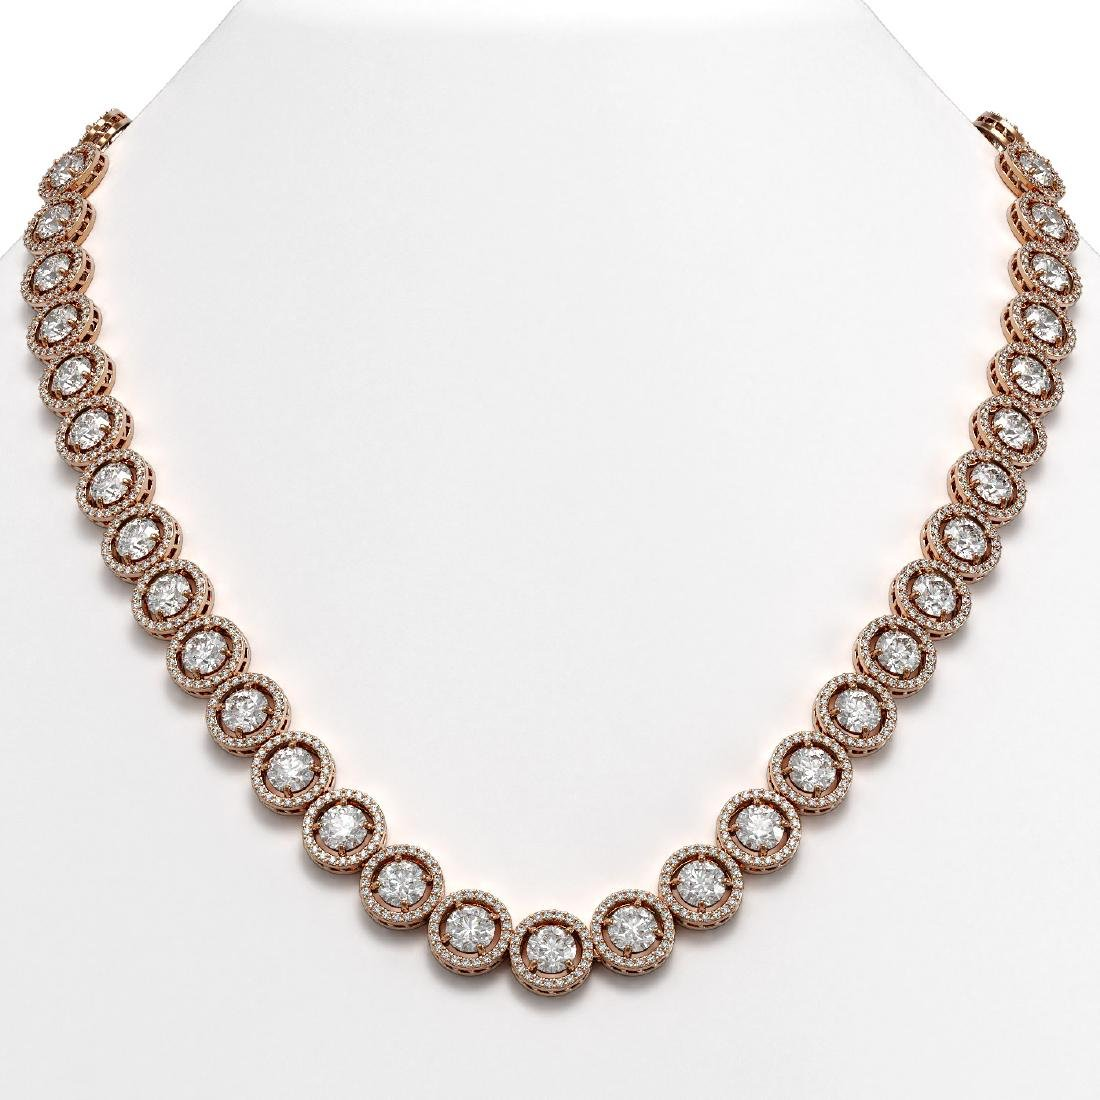 35.32 CTW Diamond Designer Necklace 18K Rose Gold